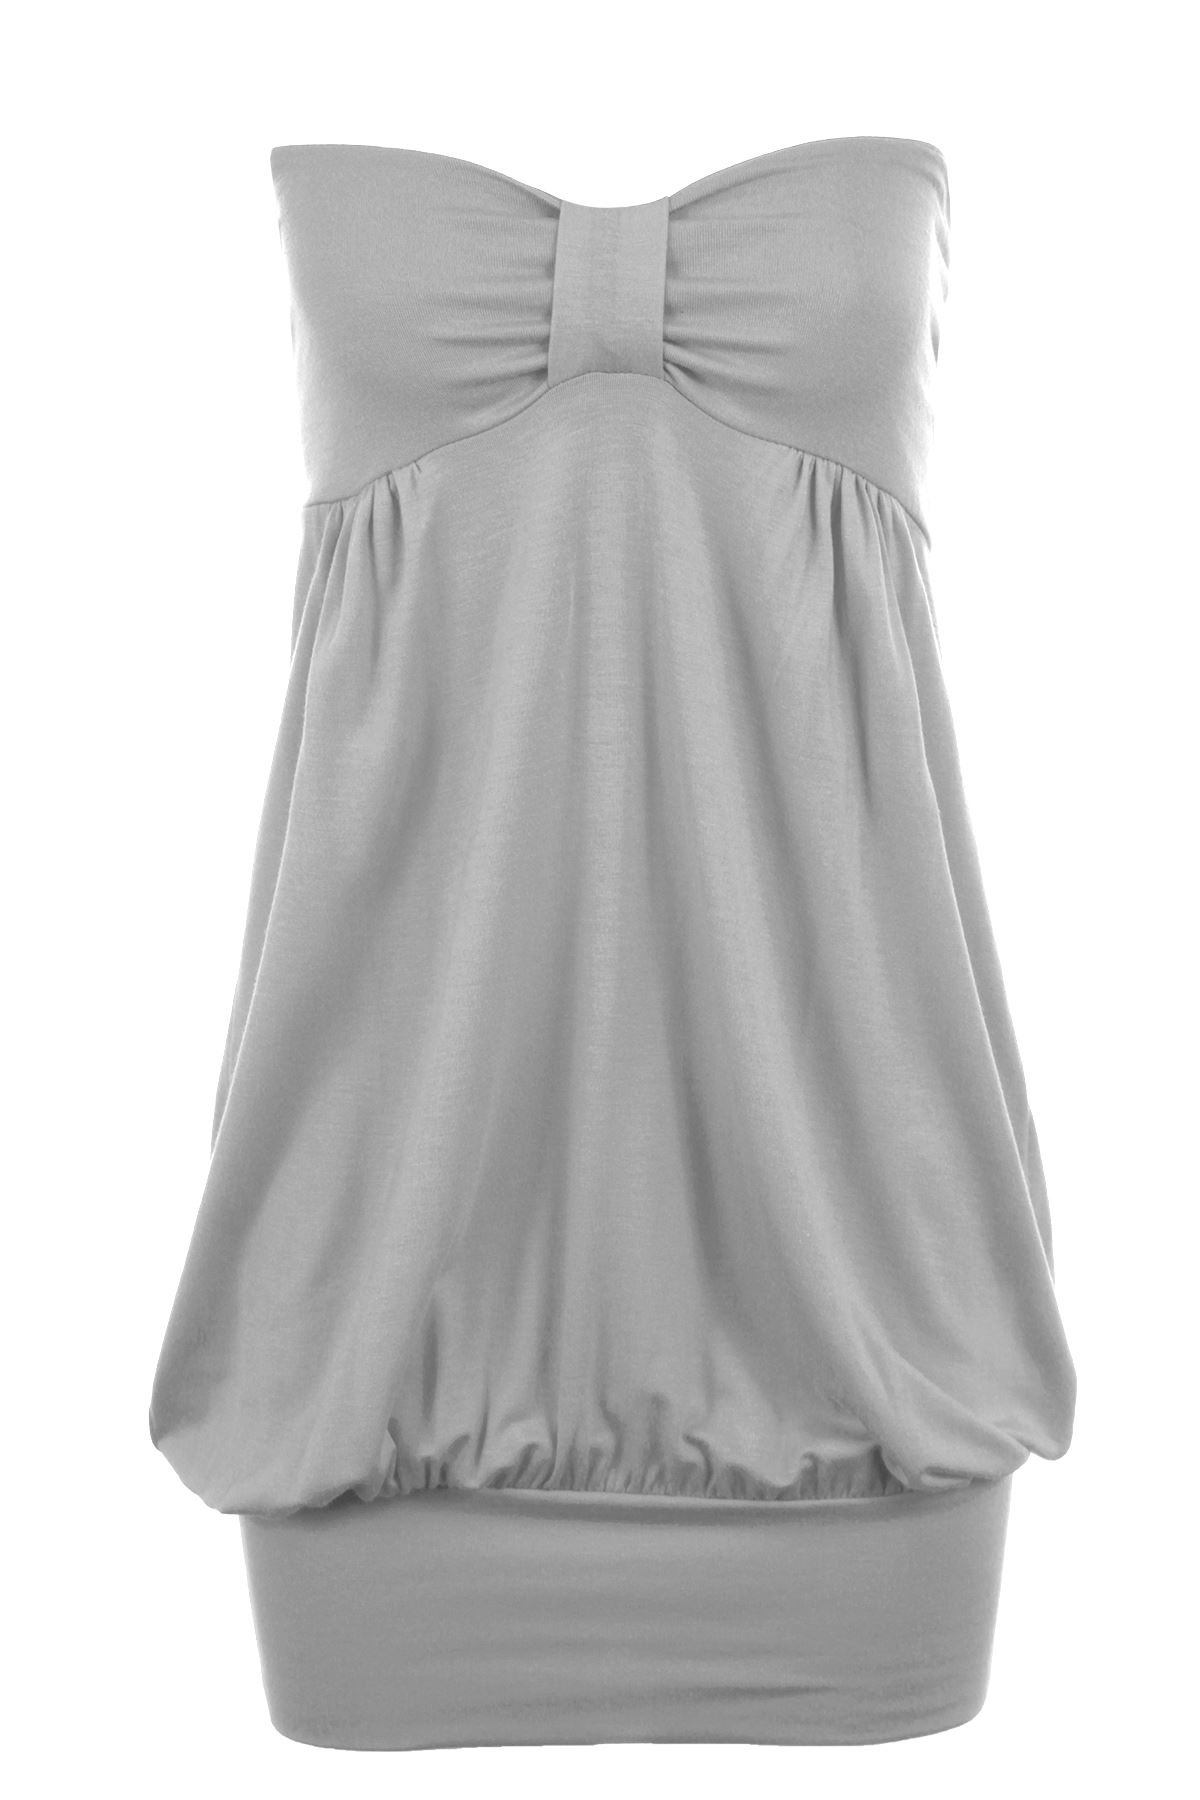 Ladies Boobtube Strapless Knot Plus Size Women/'s Bandeau Party Casual Top